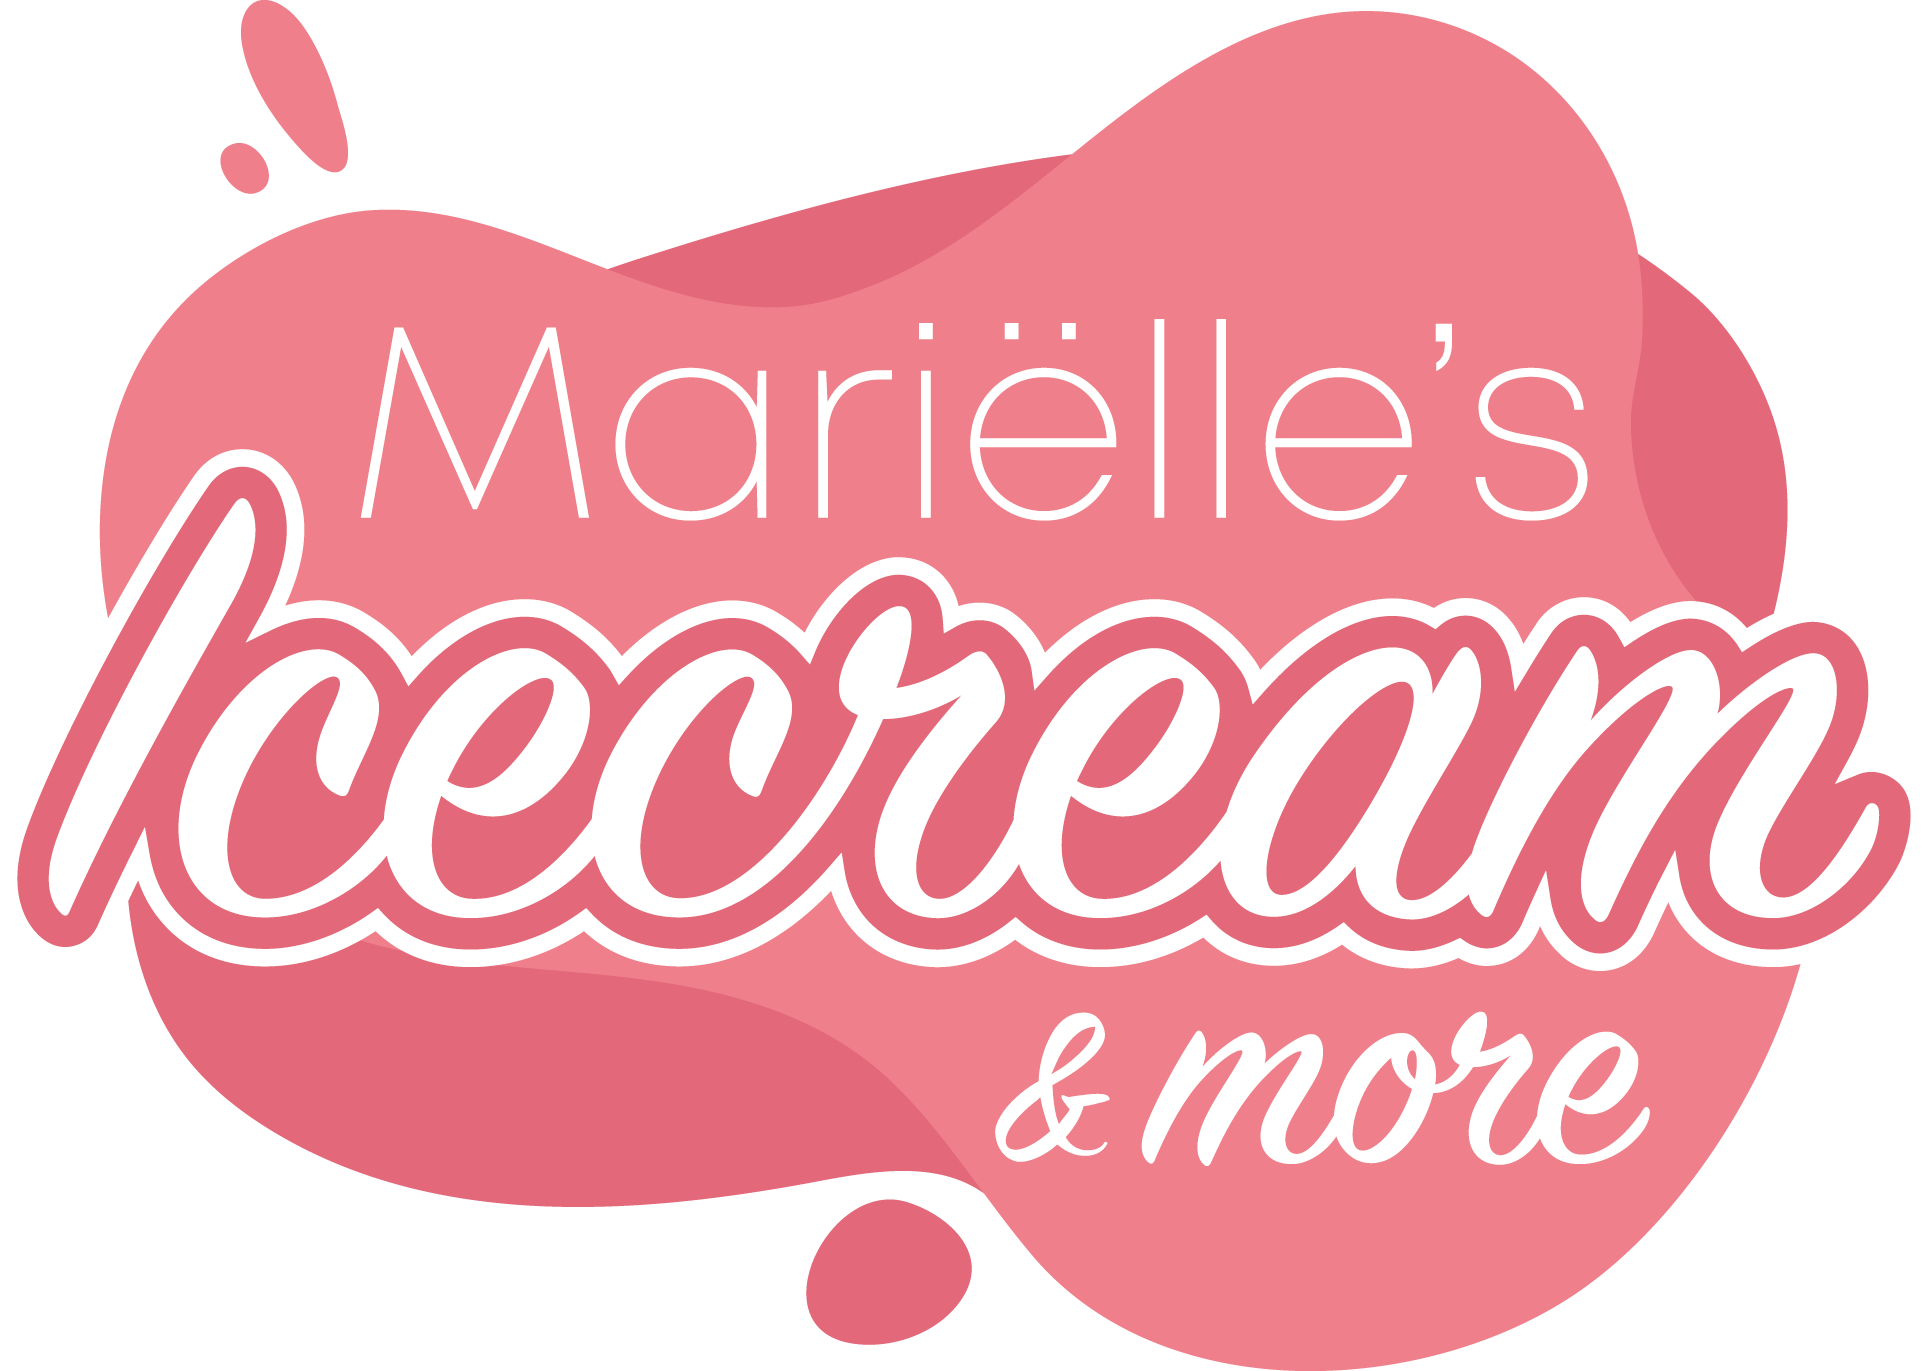 Mariëlle's Icecream